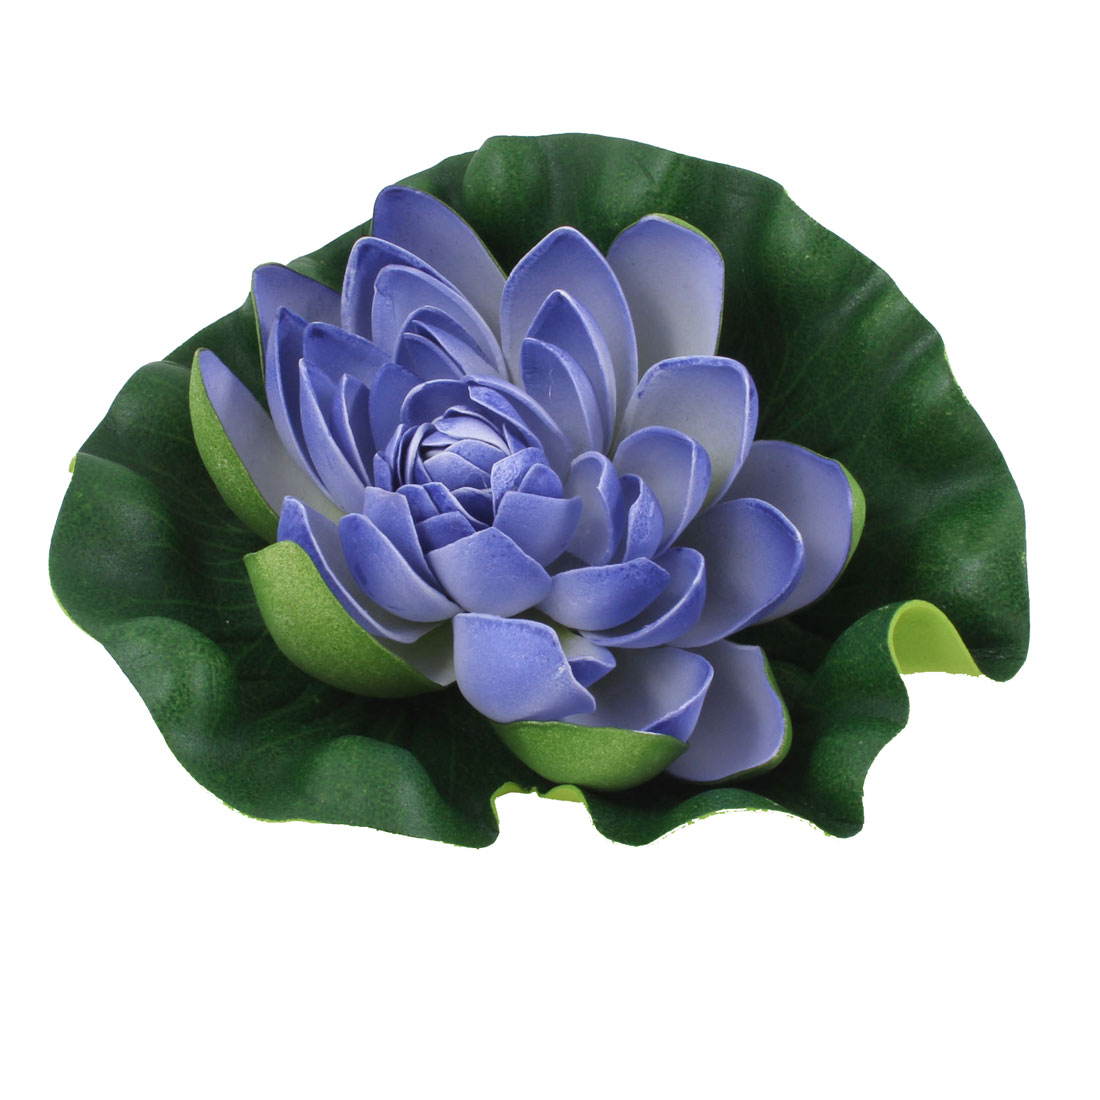 "6.7"" Dia Indigo Blue Green Floatable Lotus Foam Flower Decor for Fish Tank Pond"